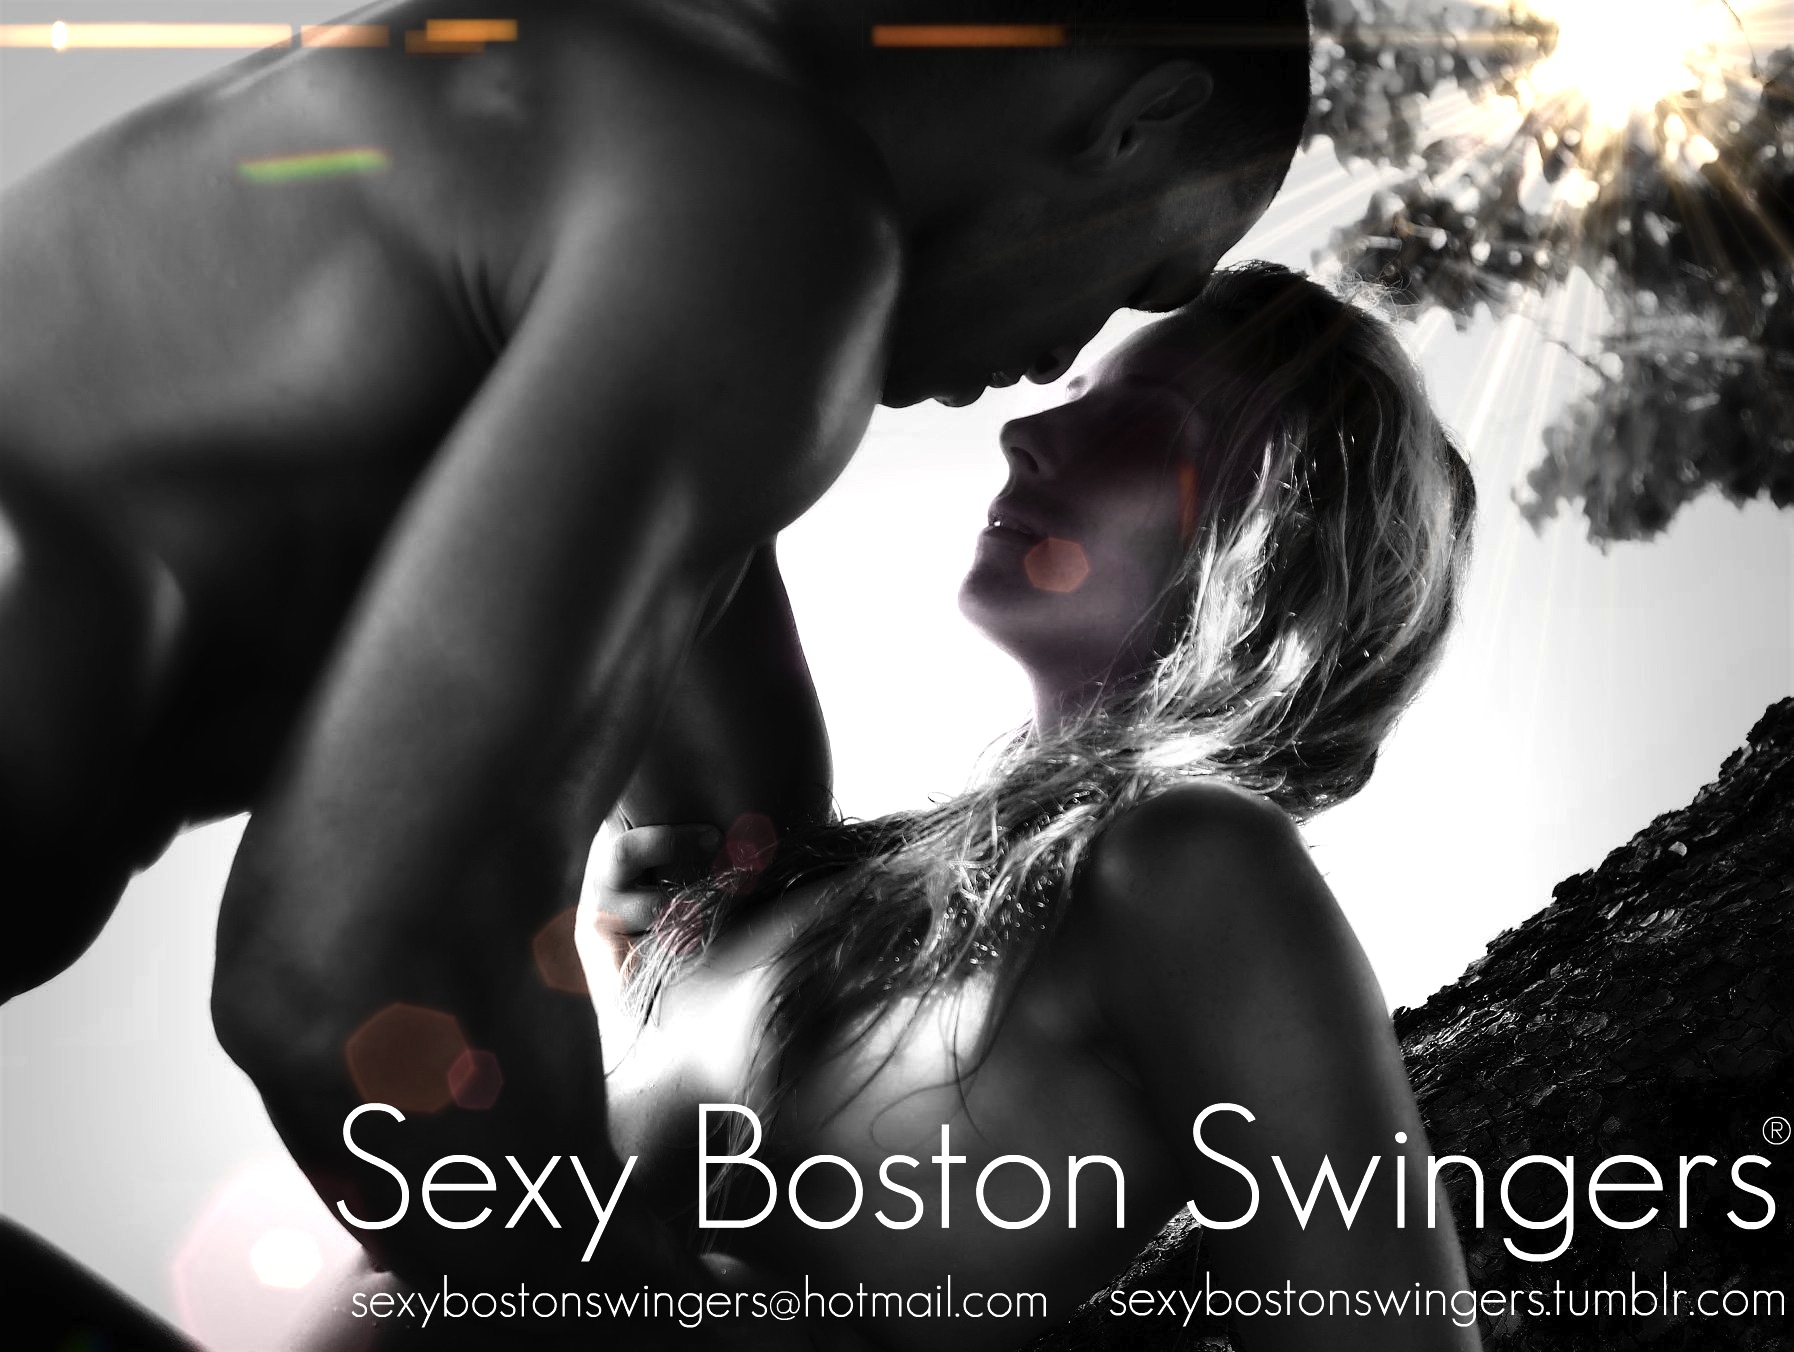 boston swinging